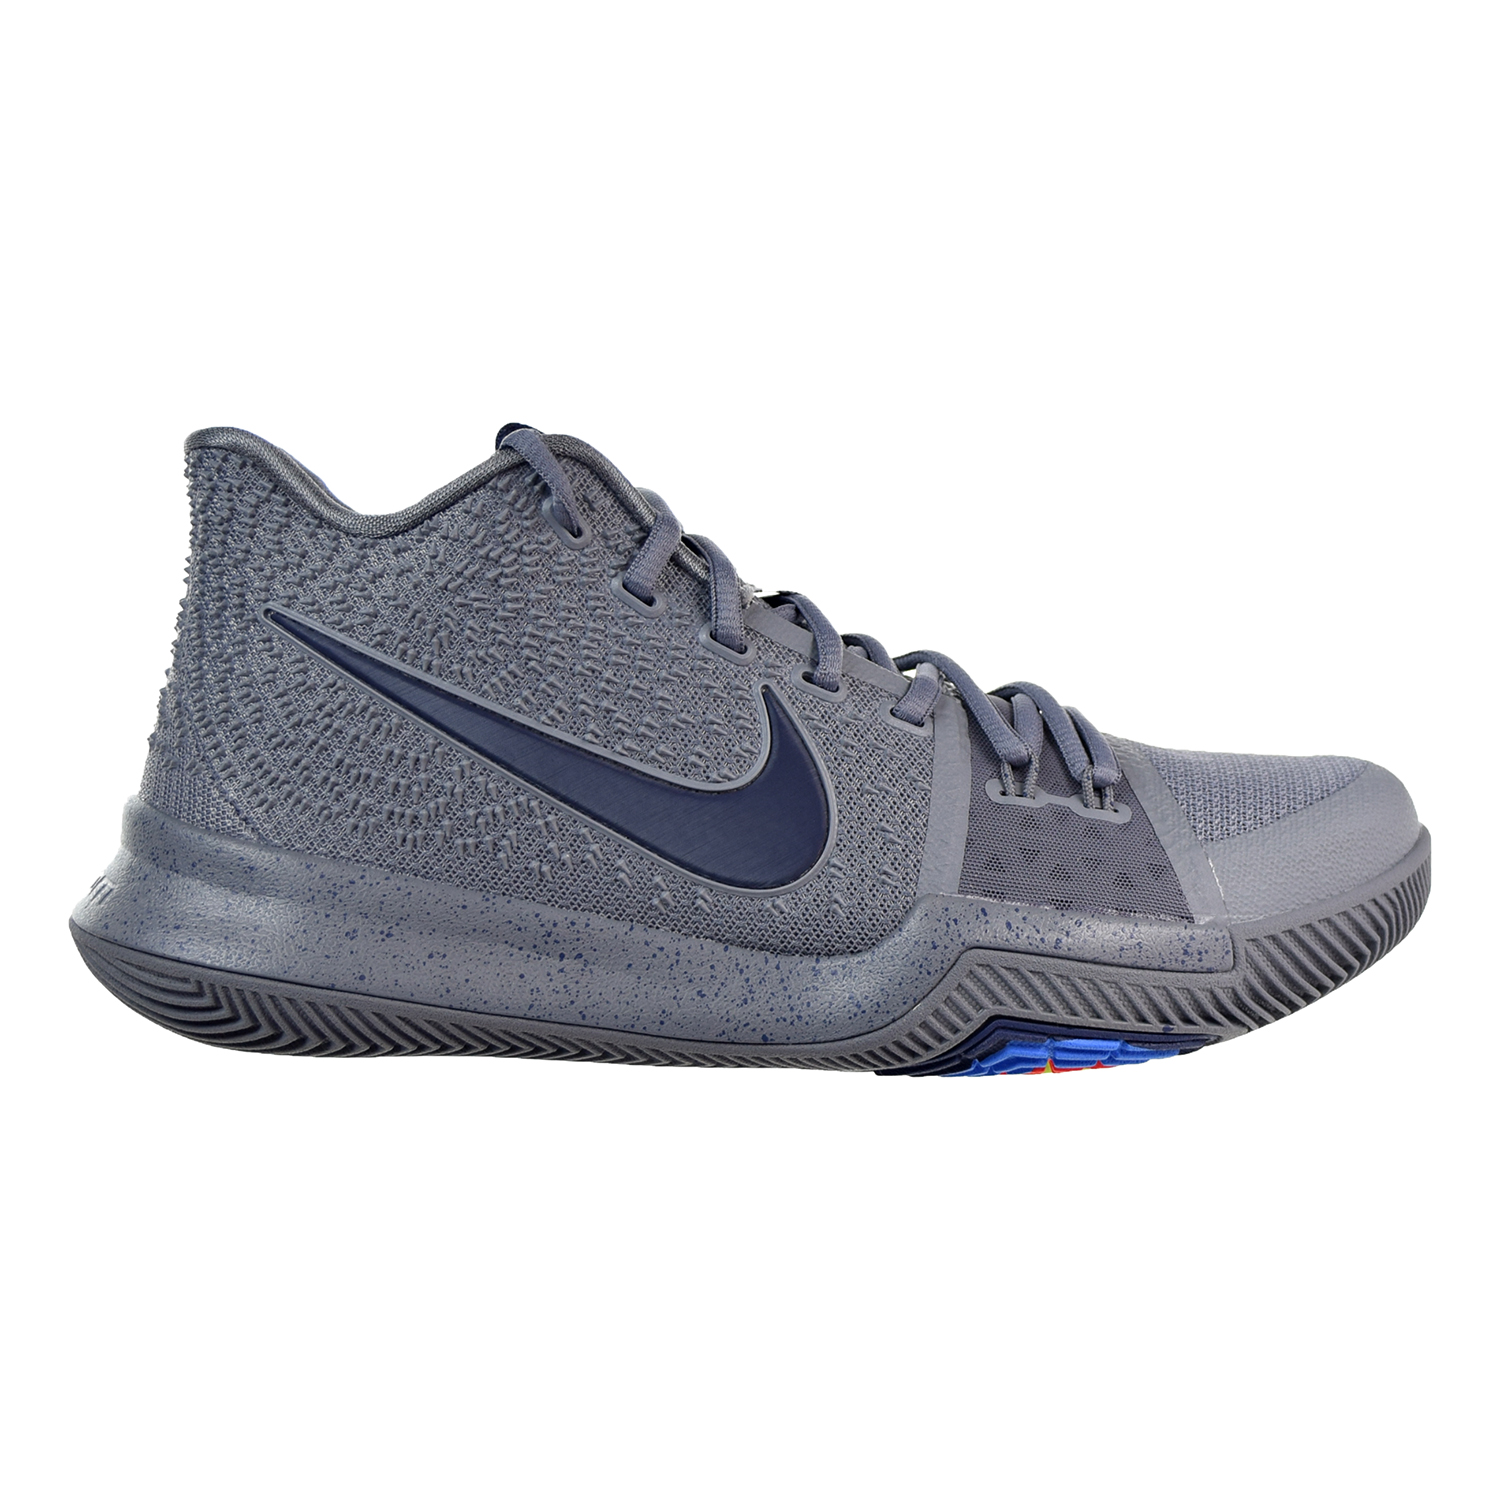 91f8d5fda33 ... best denmark nike kyrie 3 mens shoes cool grey midnight navy pure  polarized blue 852395 001